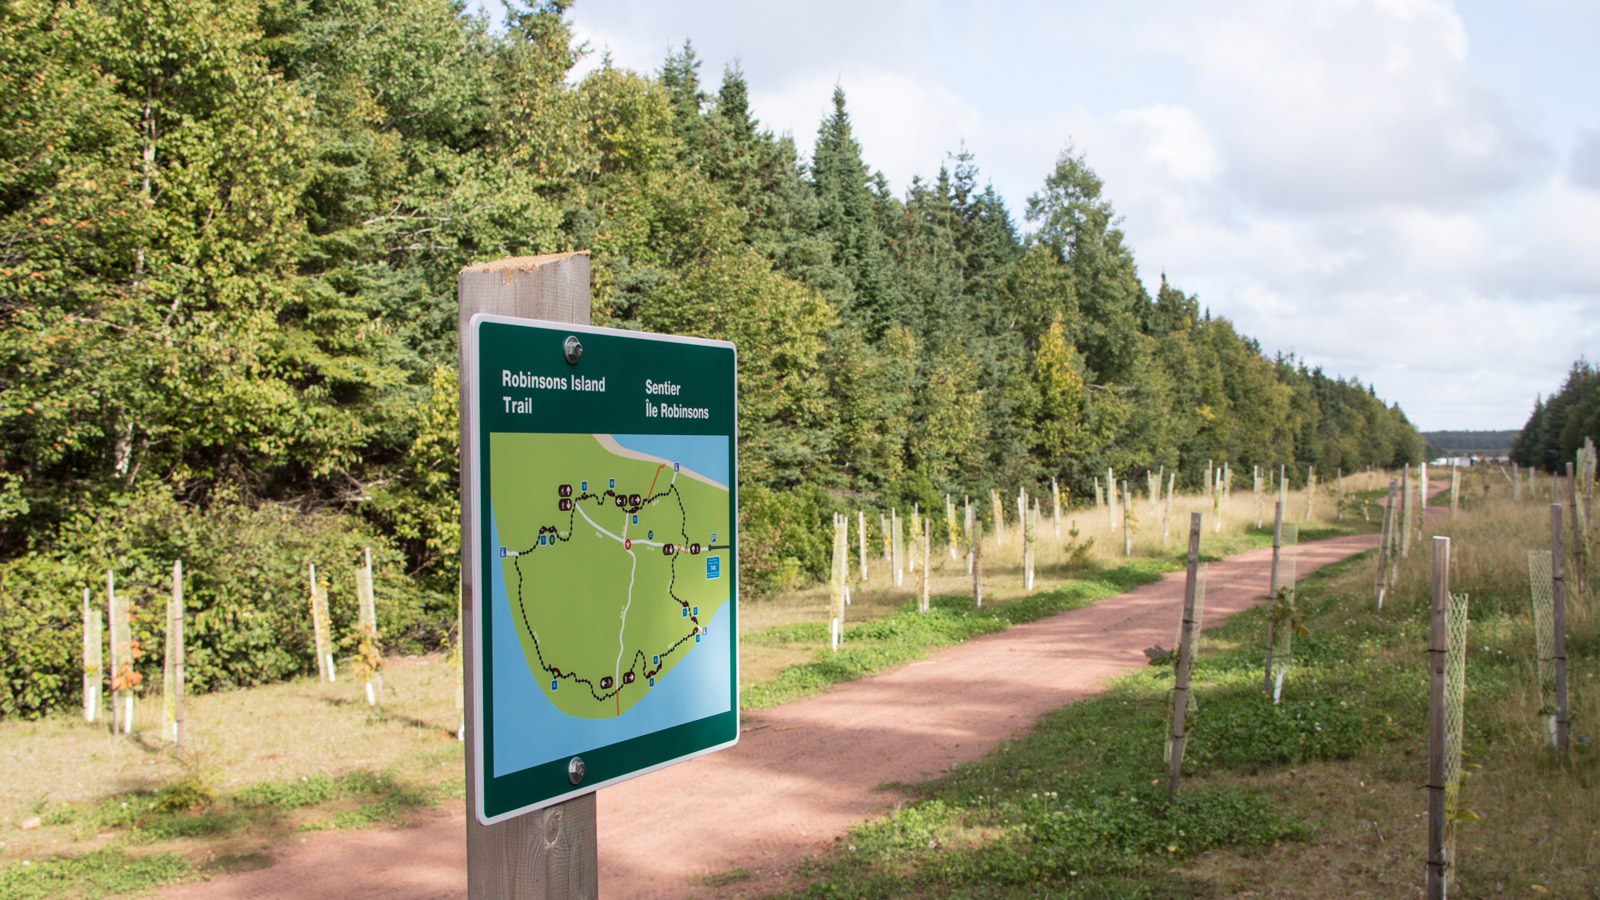 """ORIENTATION Located at key intersections, """"you are here"""" maps that provide orientation and guide visitors to and from the main loop, and well as to exit paths should they wish to leave the trail."""